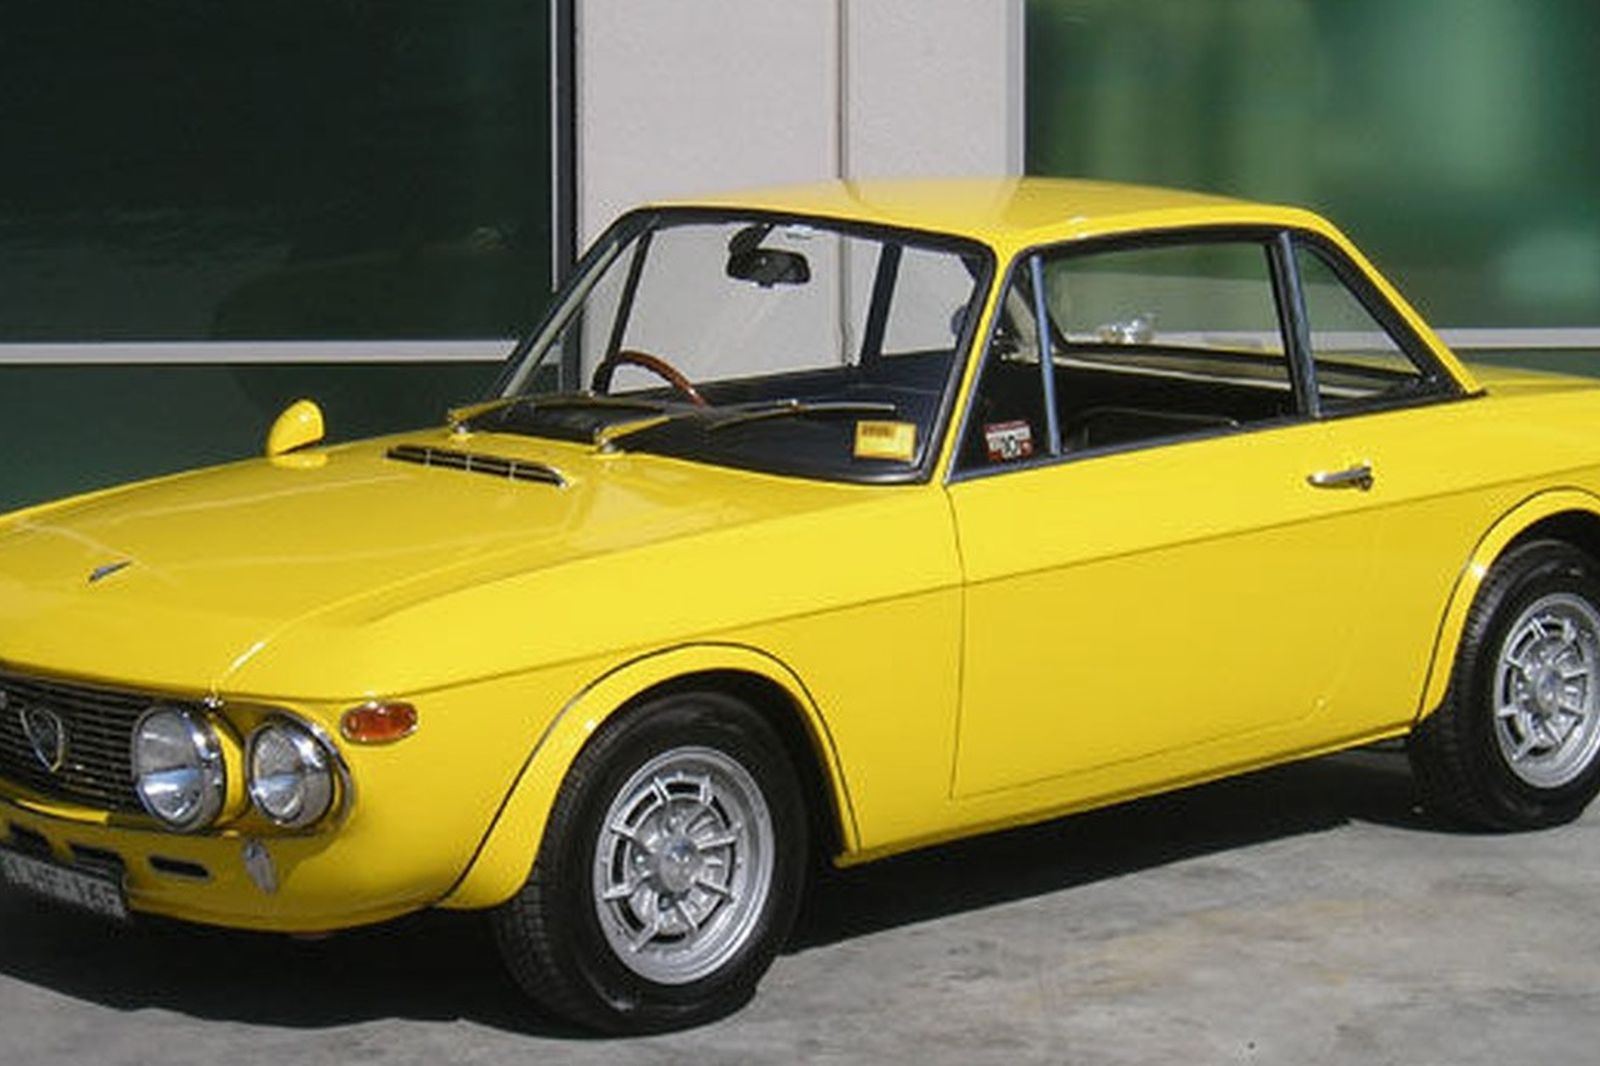 Lancia Fulvia Rallye 1.6HF Coupe Auctions - Lot 23 - Shannons